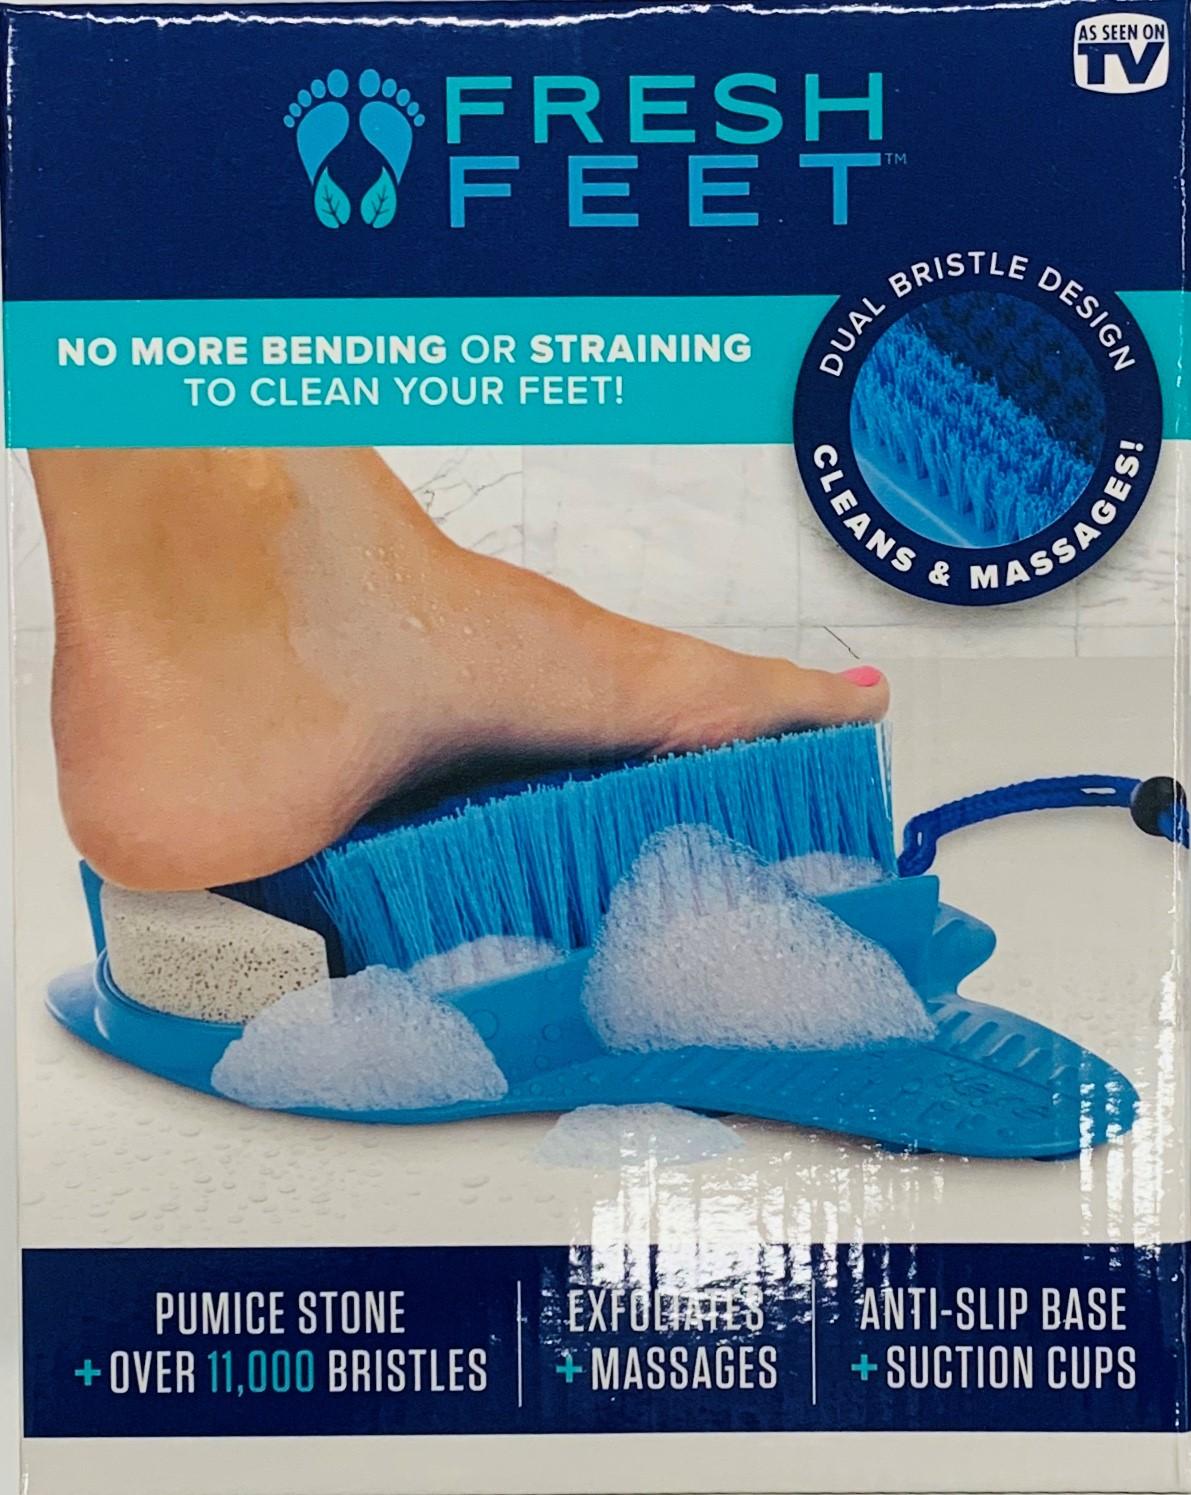 Fresh Feet Foot Scrubber, Clean and Massage Your Feet without Bending, Use in the Shower, As Seen on TV